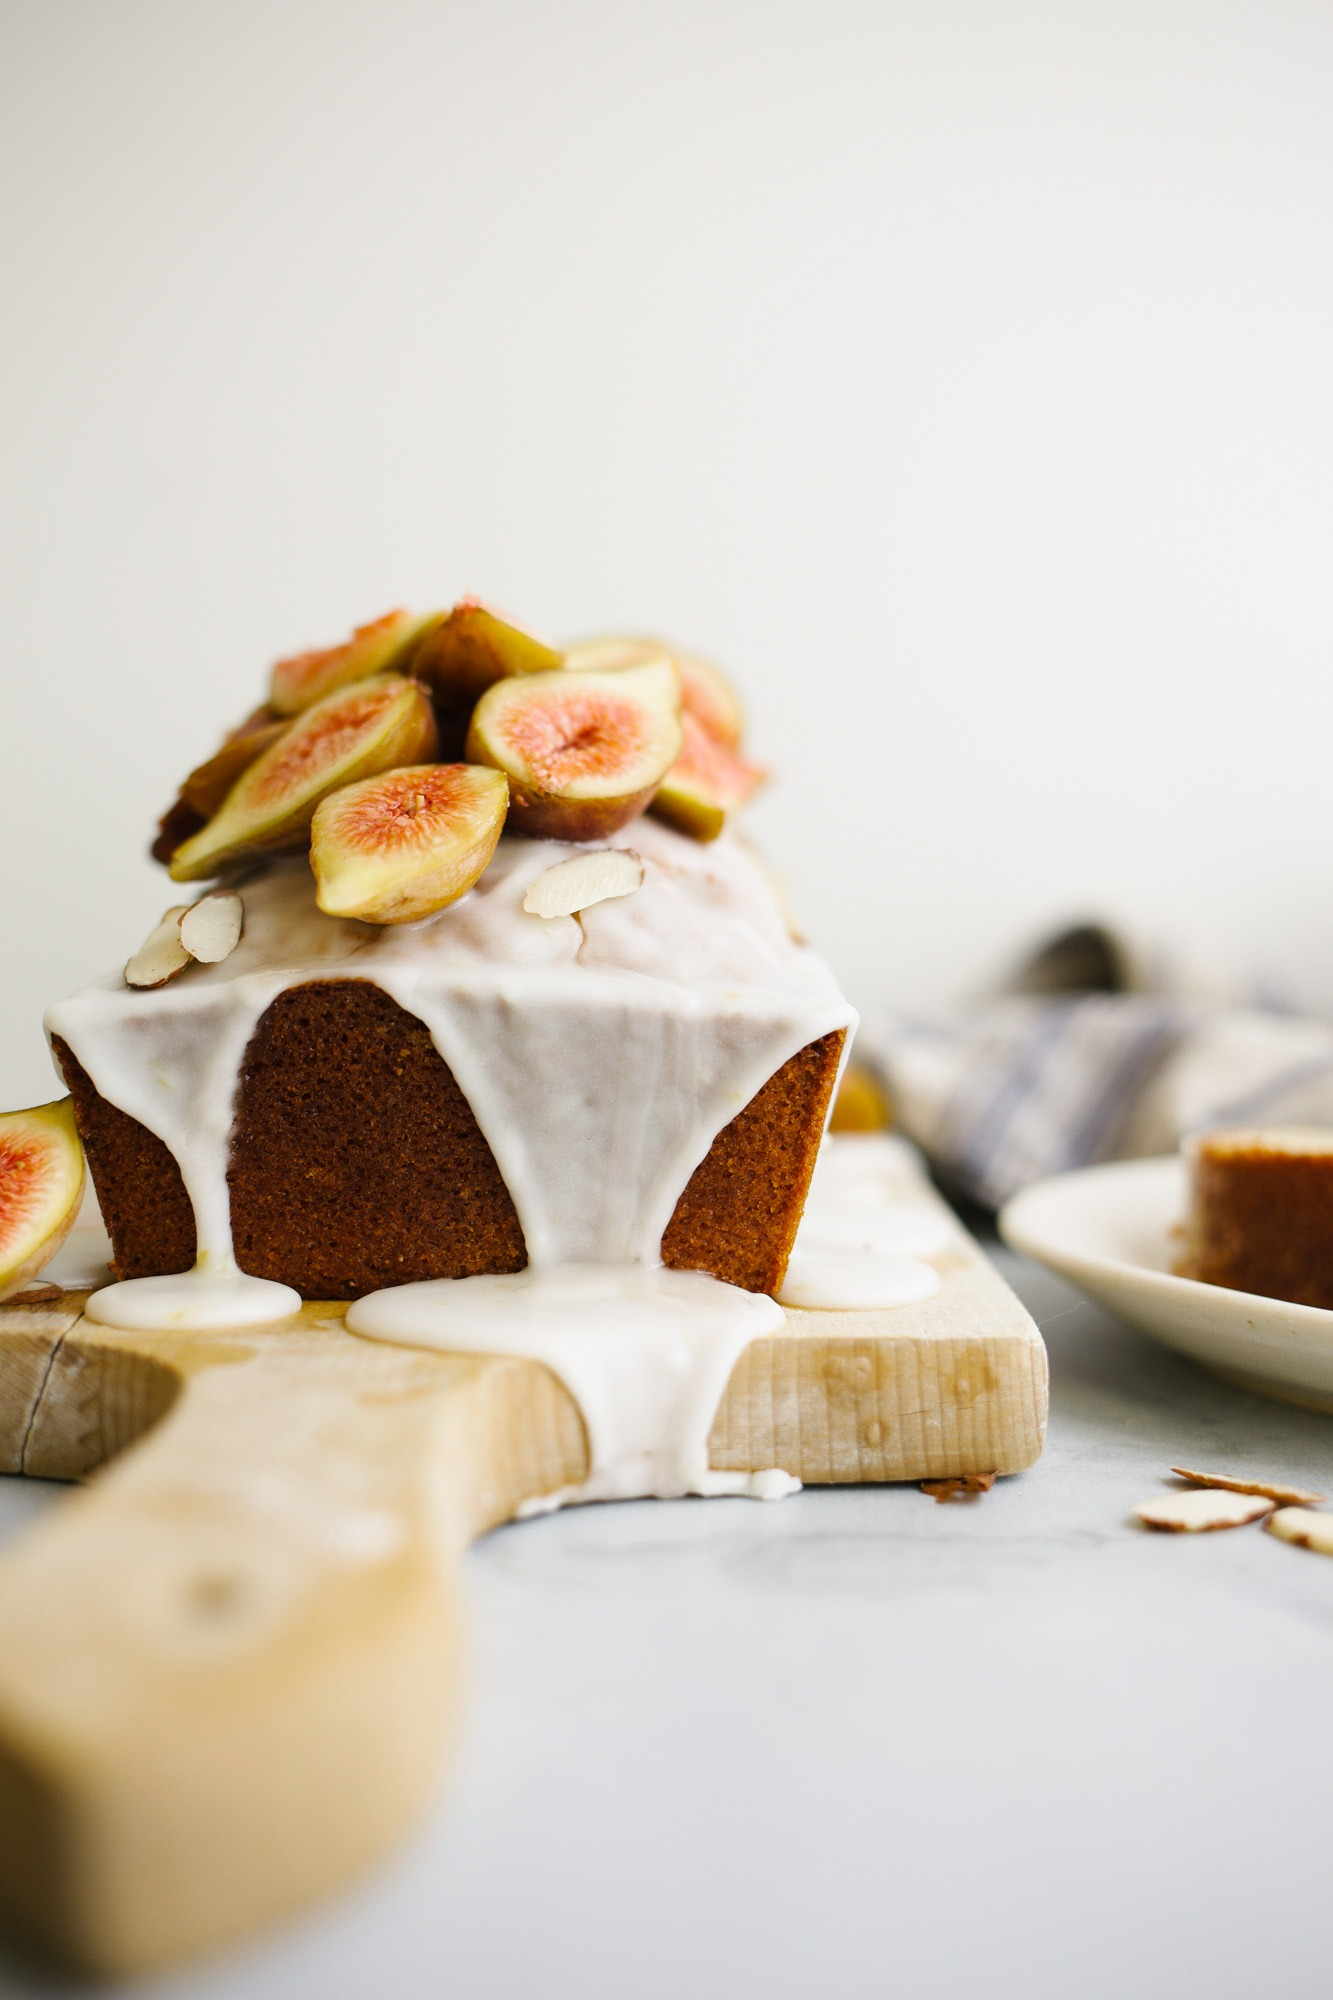 Vanilla Butter Loaf by Wood and Spoon. This is a pound cake like cake with a cinnamon swirl and a simple vanilla glaze. Top with fresh seasonal fruit or eat plain! This make ahead treat is great to serve as a breakfast snack or dessert. Learn more about this easy baked good on thewoodandspoon.com